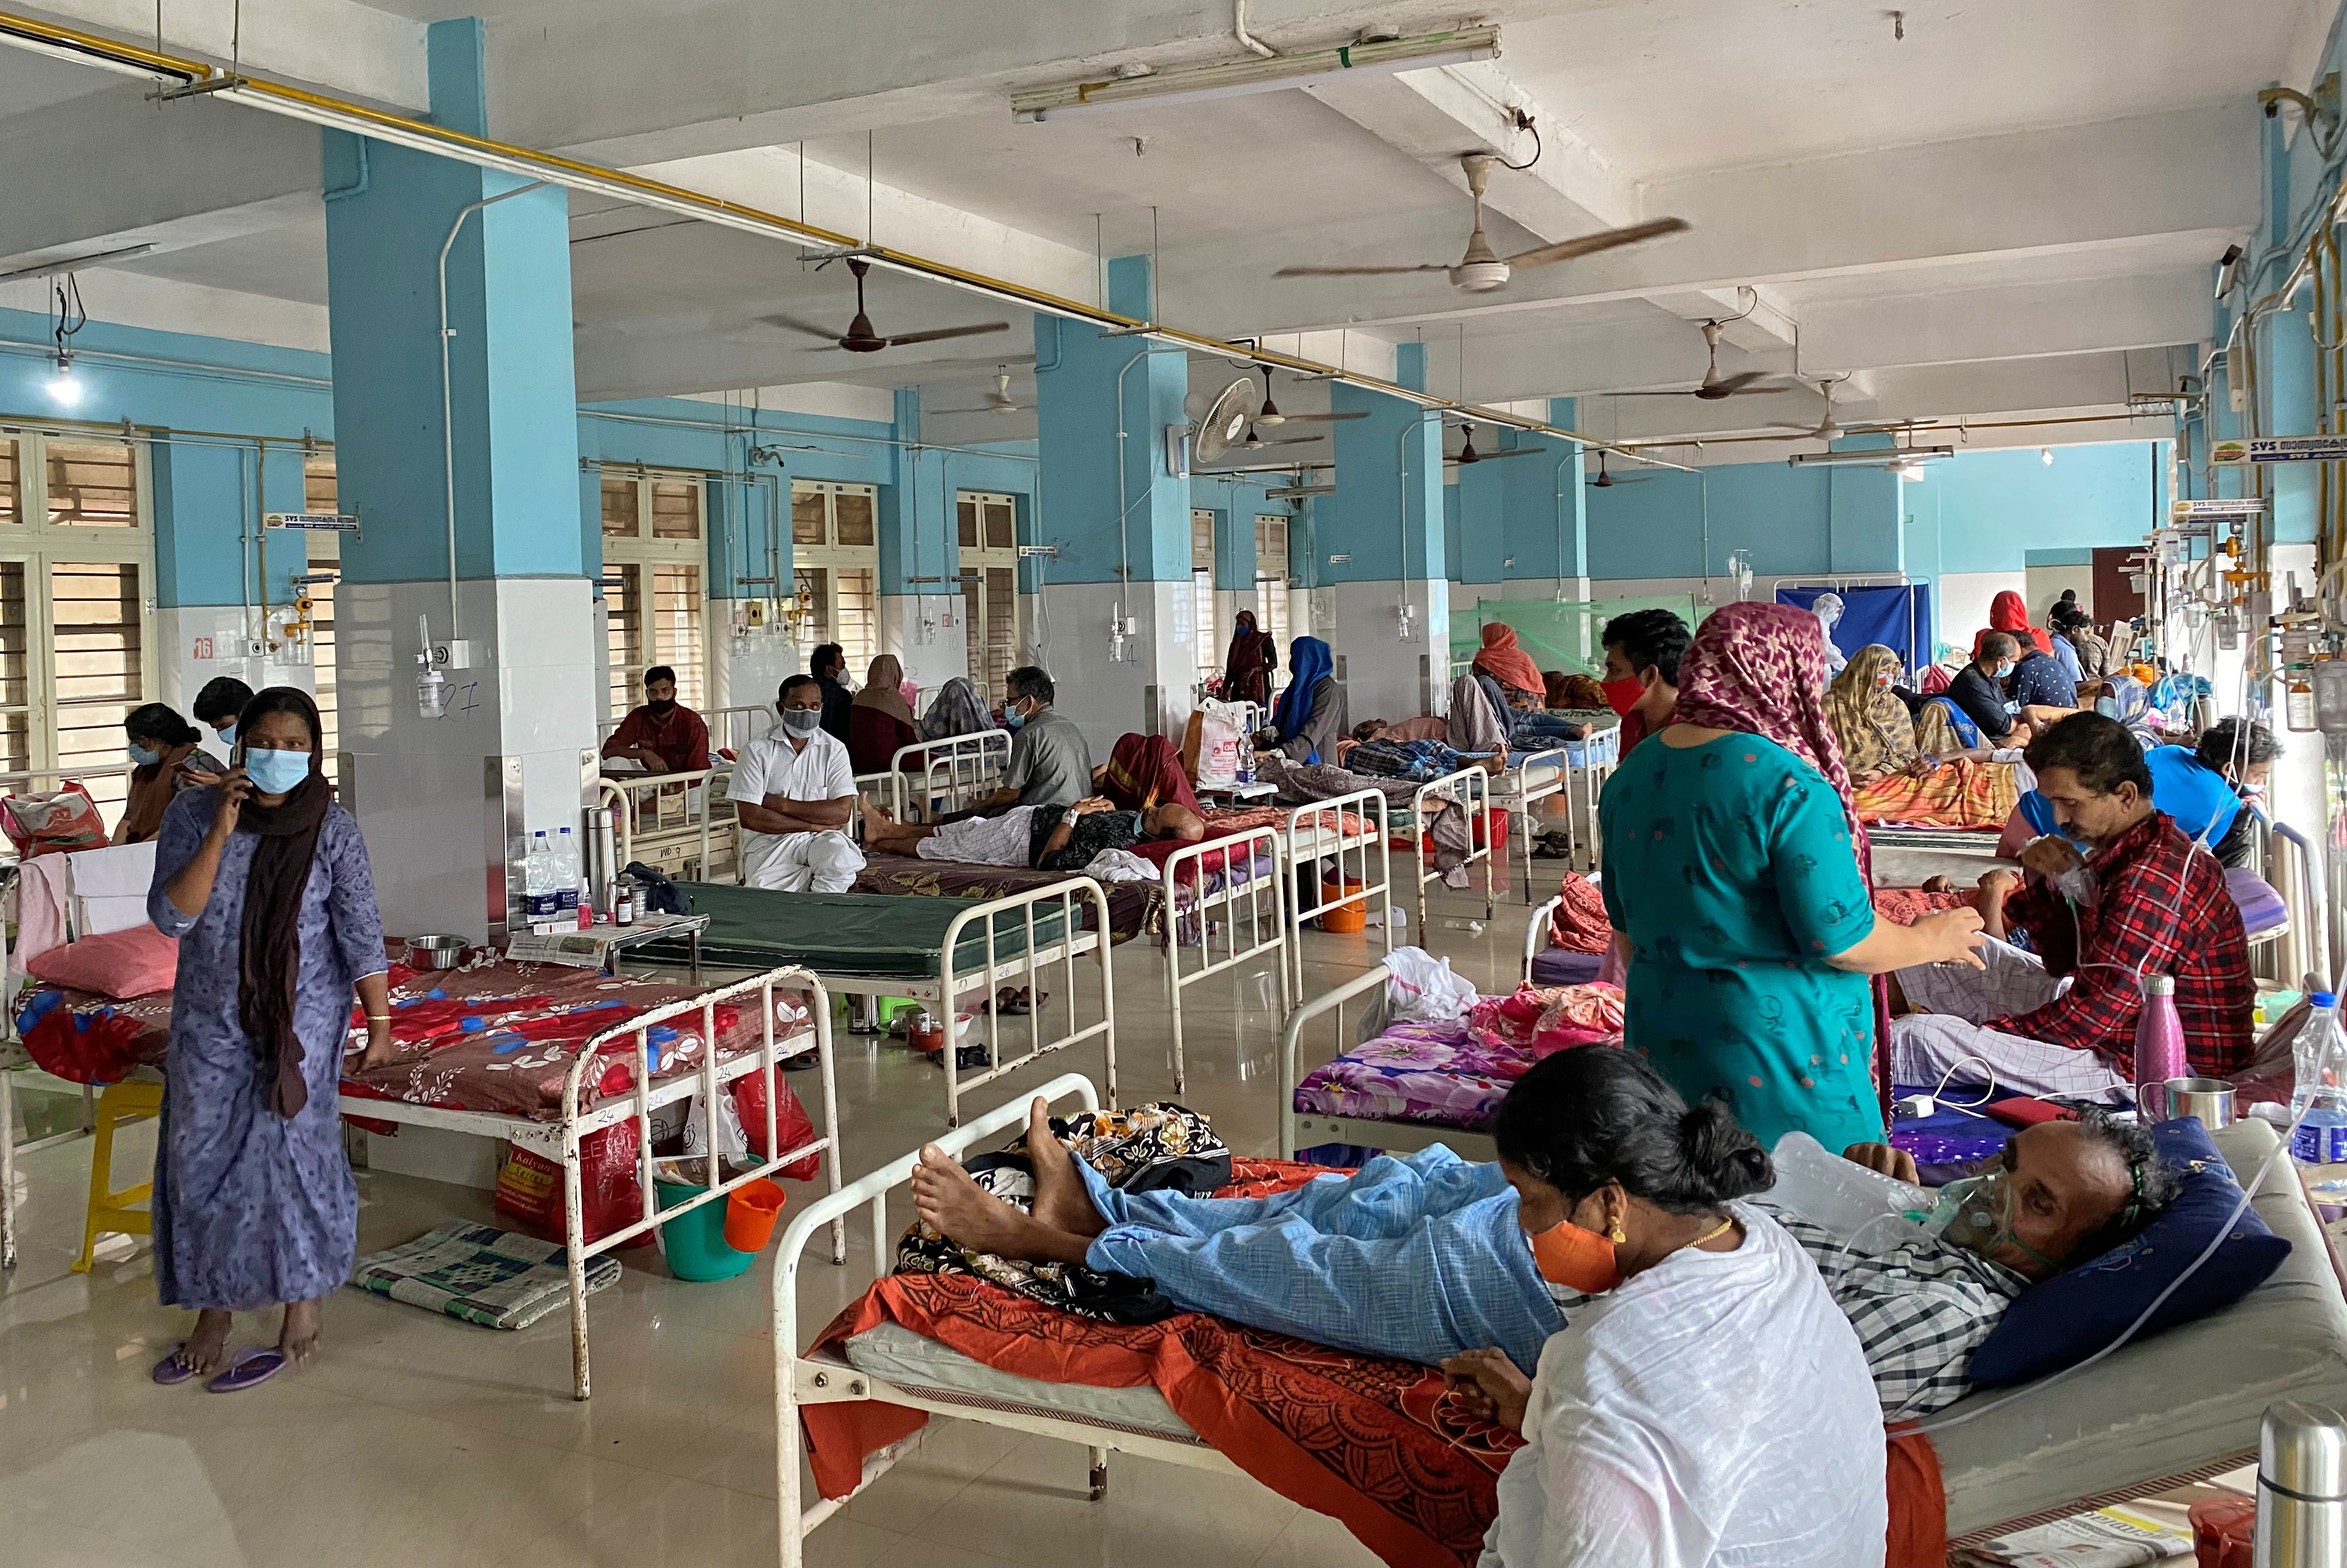 A coronavirus disease (COVID-19) ward is pictured in the Government Medical College Hospital in Manjeri, in the Malappuram district of the southern state of India. August 18, 2021. Picture taken August 18, 2021. REUTERS/Krishna N. Das/Files